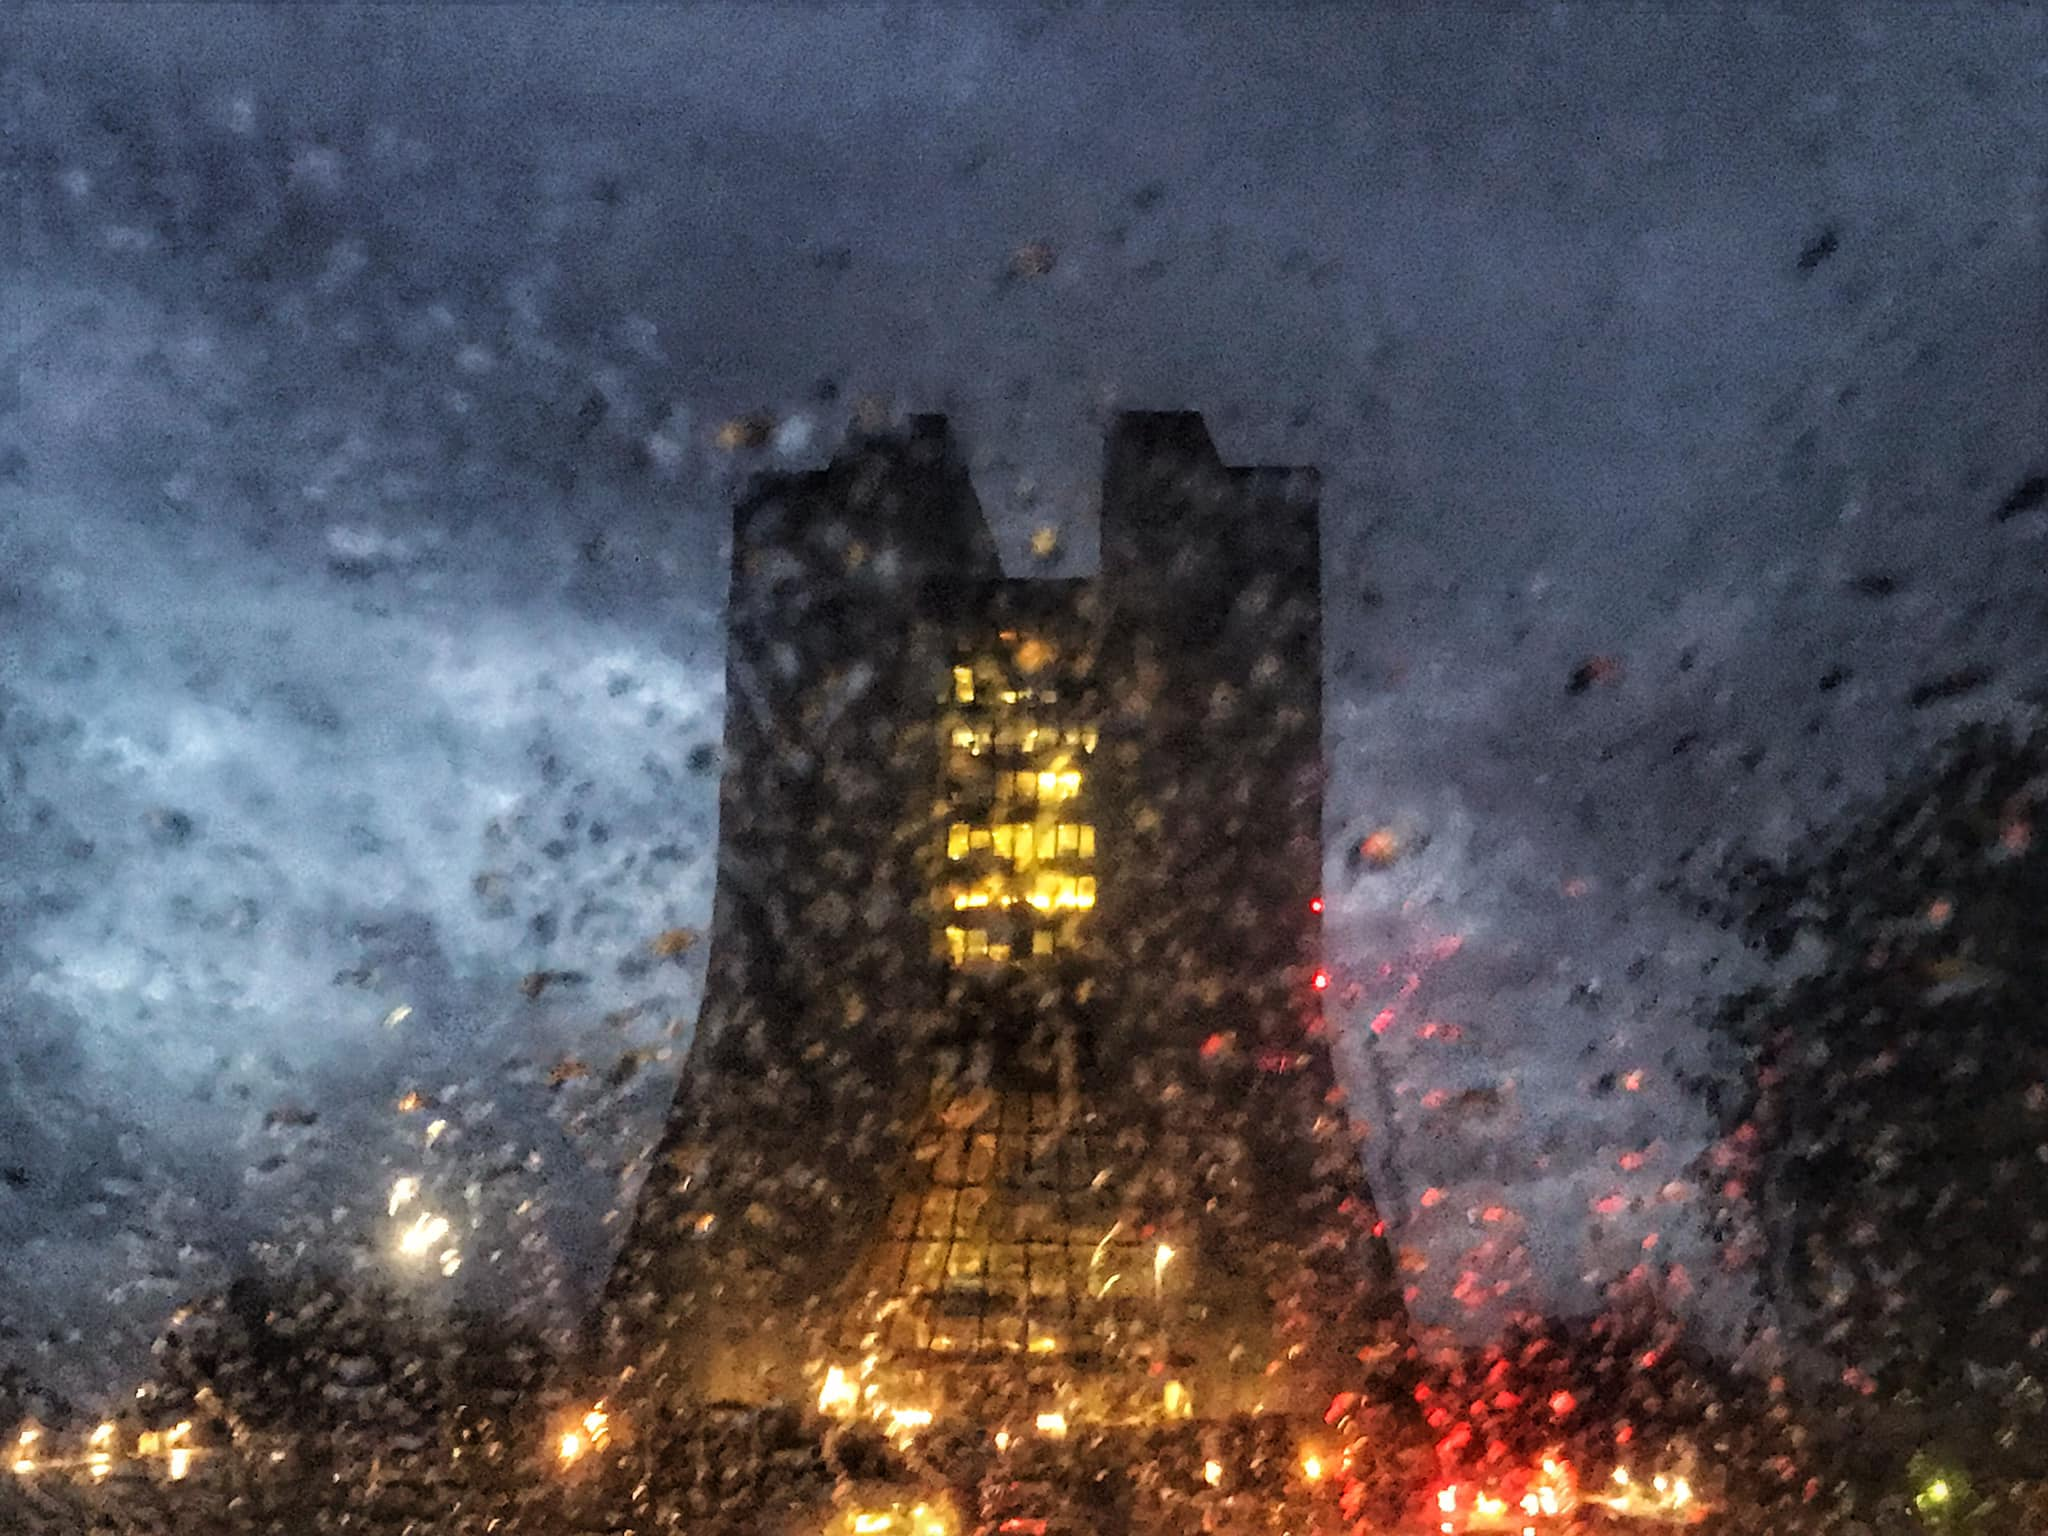 (4/4) And this view of a rain-soaked Wilson hall is seen through the windshield of a car. rain, Wilson Hall, building Photo: Sudeshna Ganguly